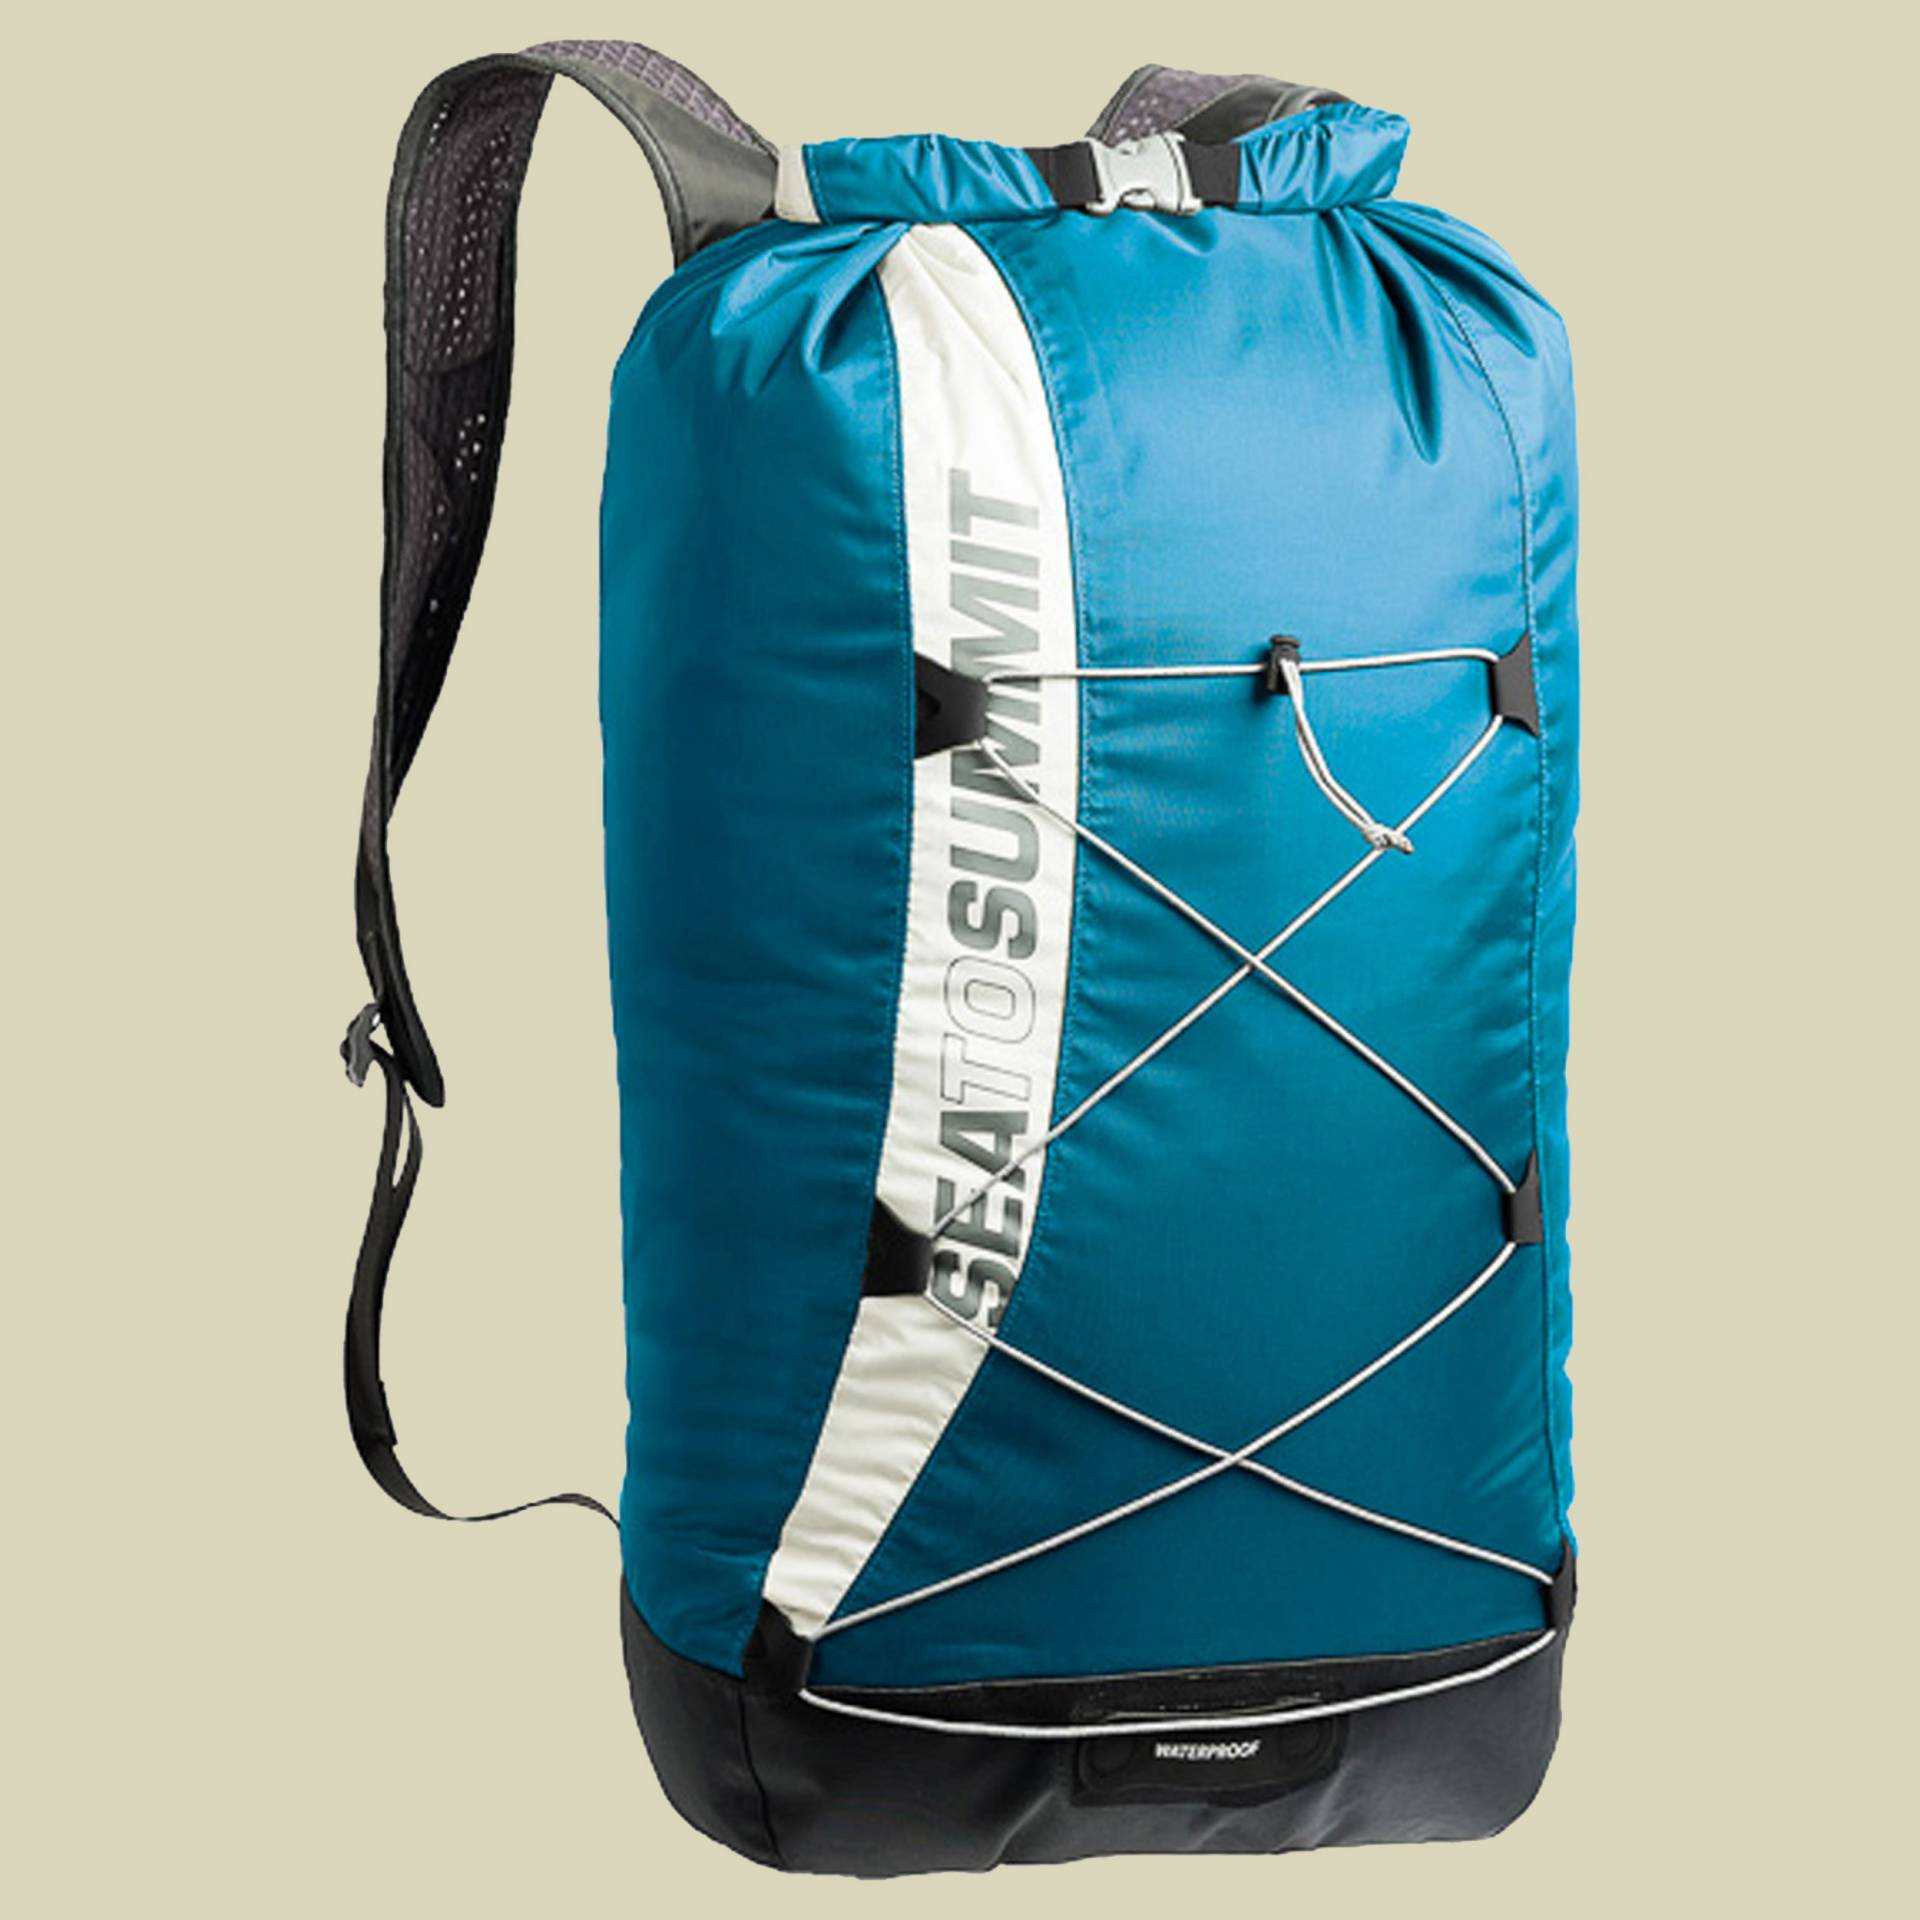 Sea to Summit Sprint Drypack 20 wasserdichter Rucksack Volumen 20 blue von Sea to Summit